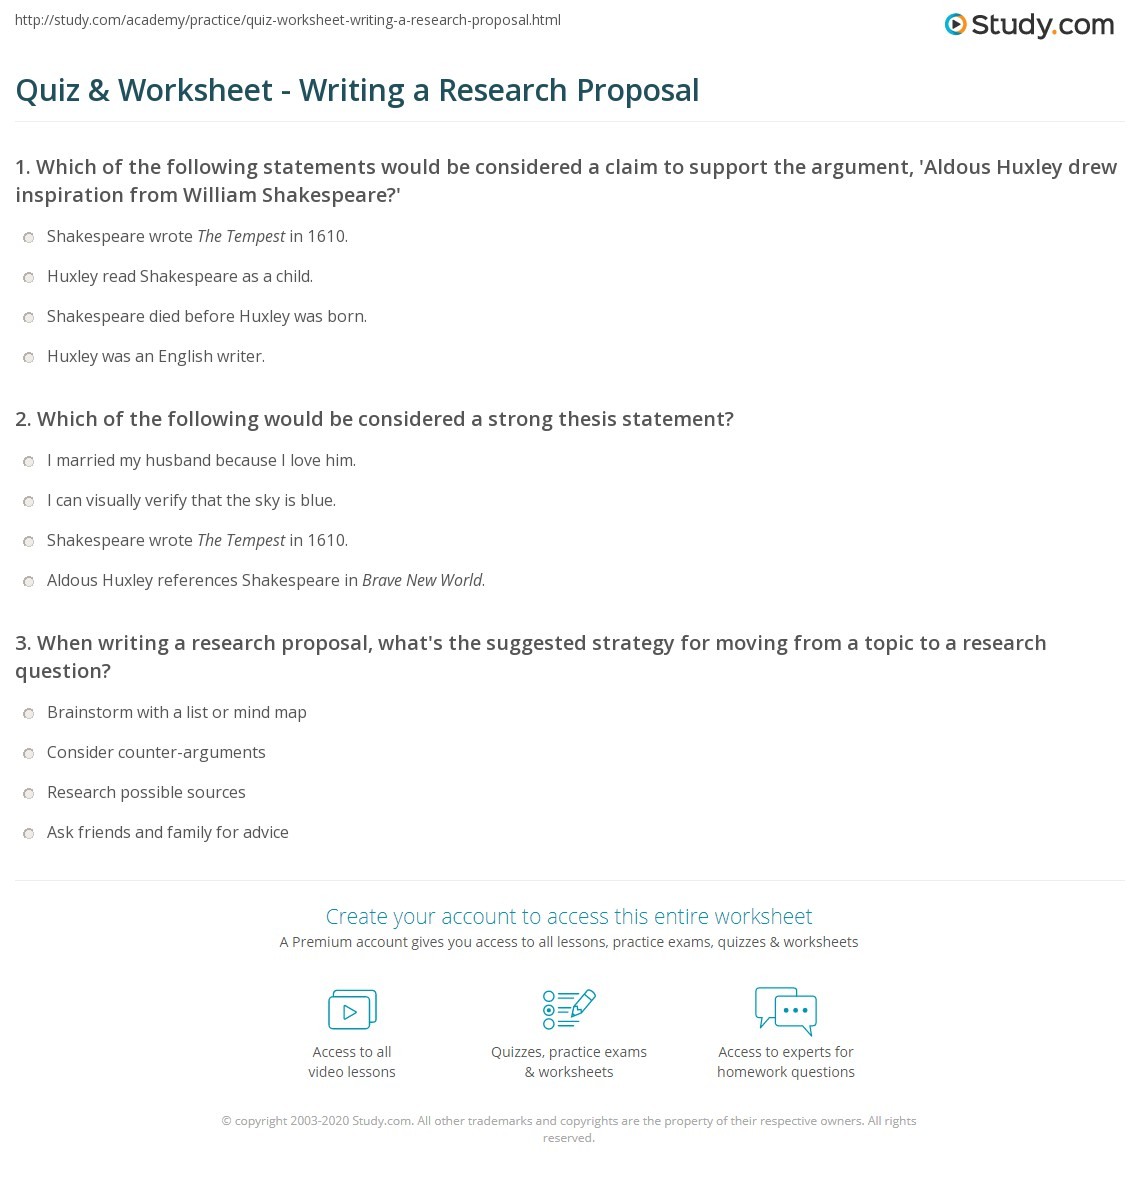 print how to write a research proposal worksheet